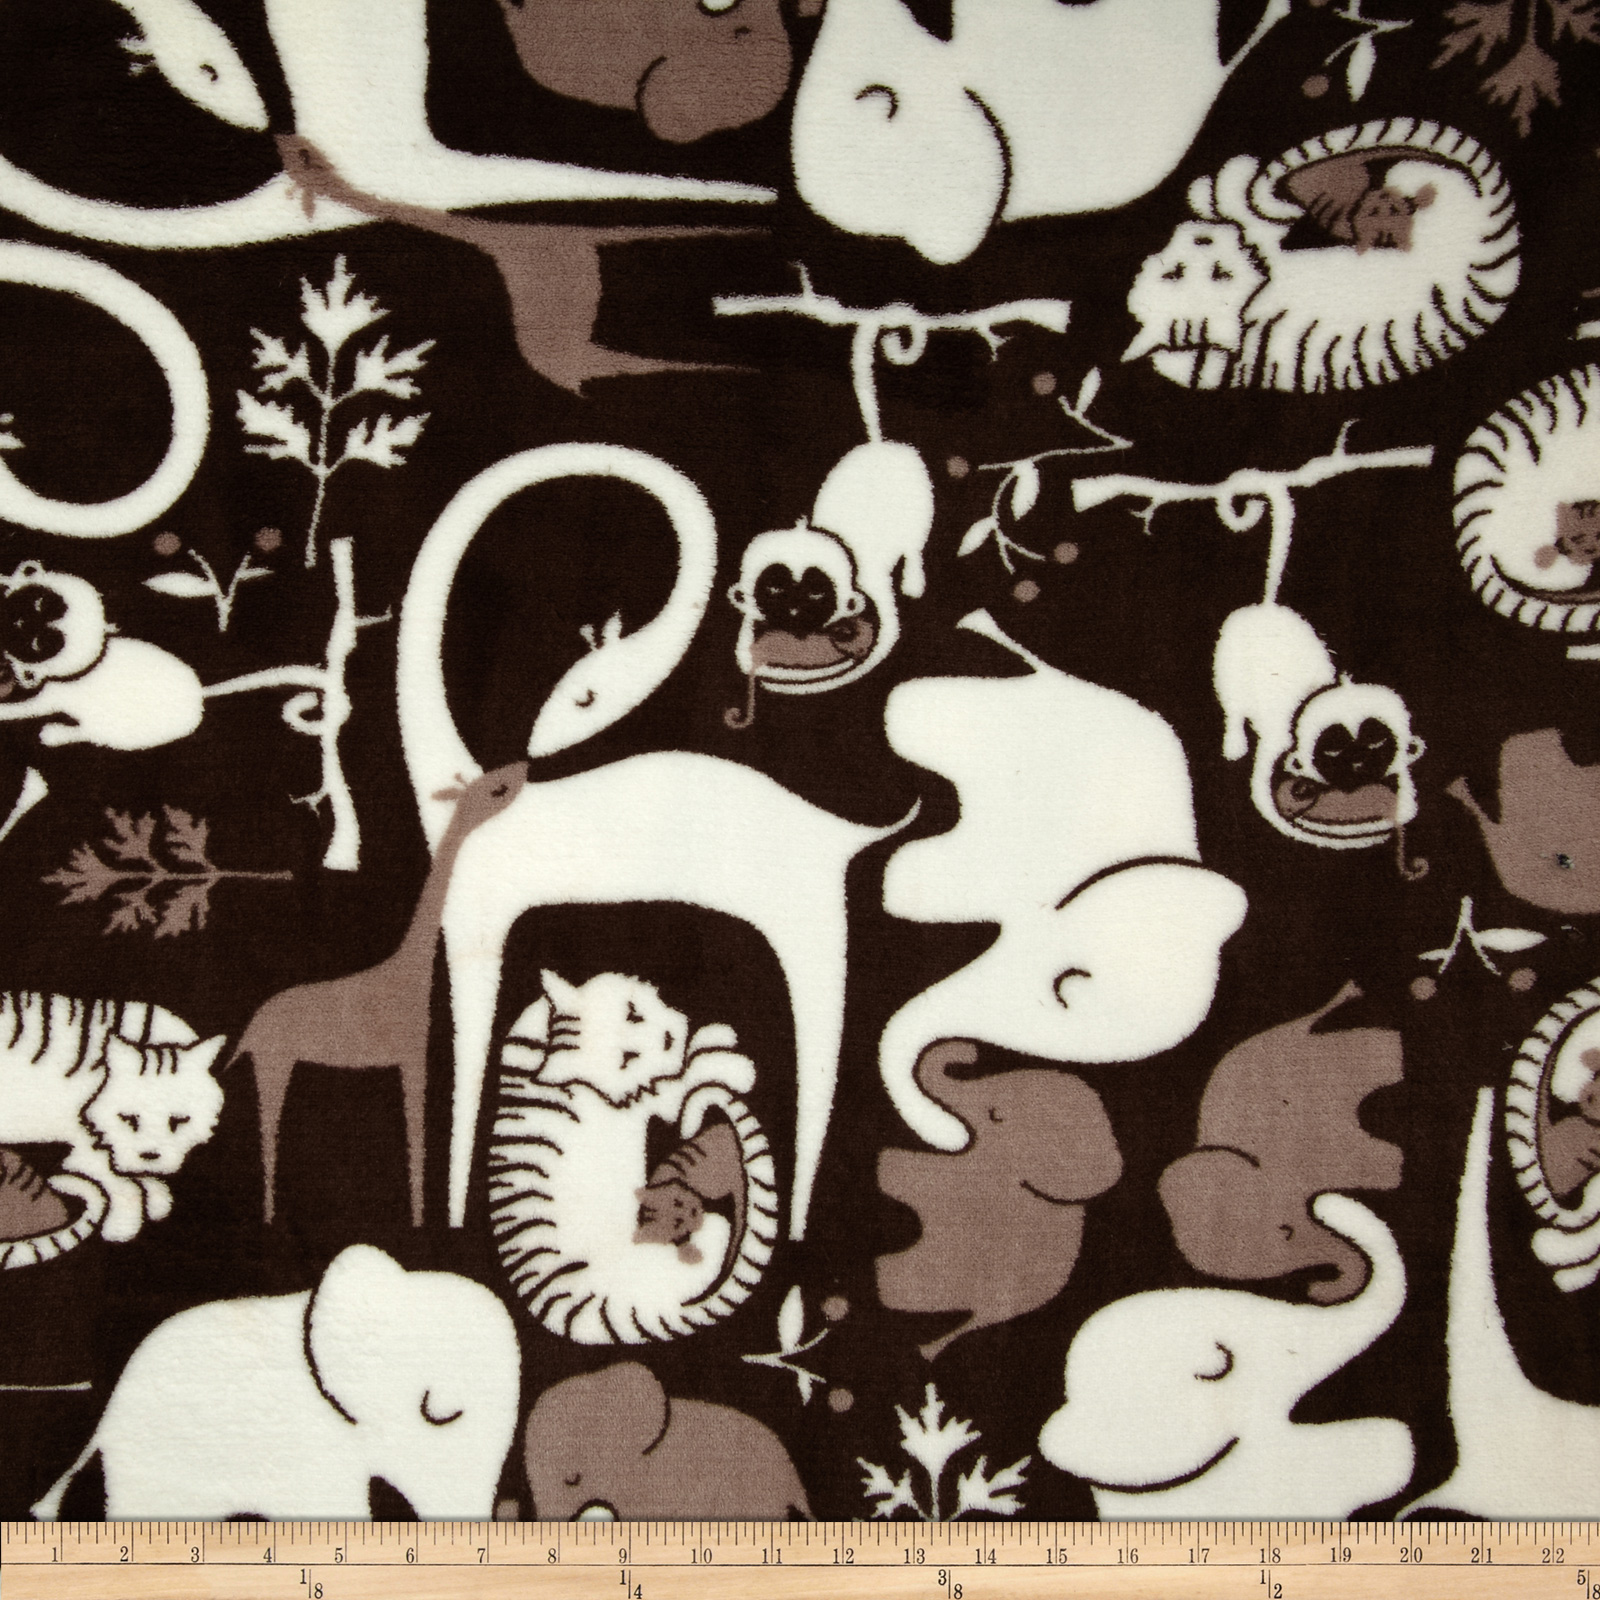 Plush Coral Fleece Zoo Animals Black/White Fabric by Eugene in USA